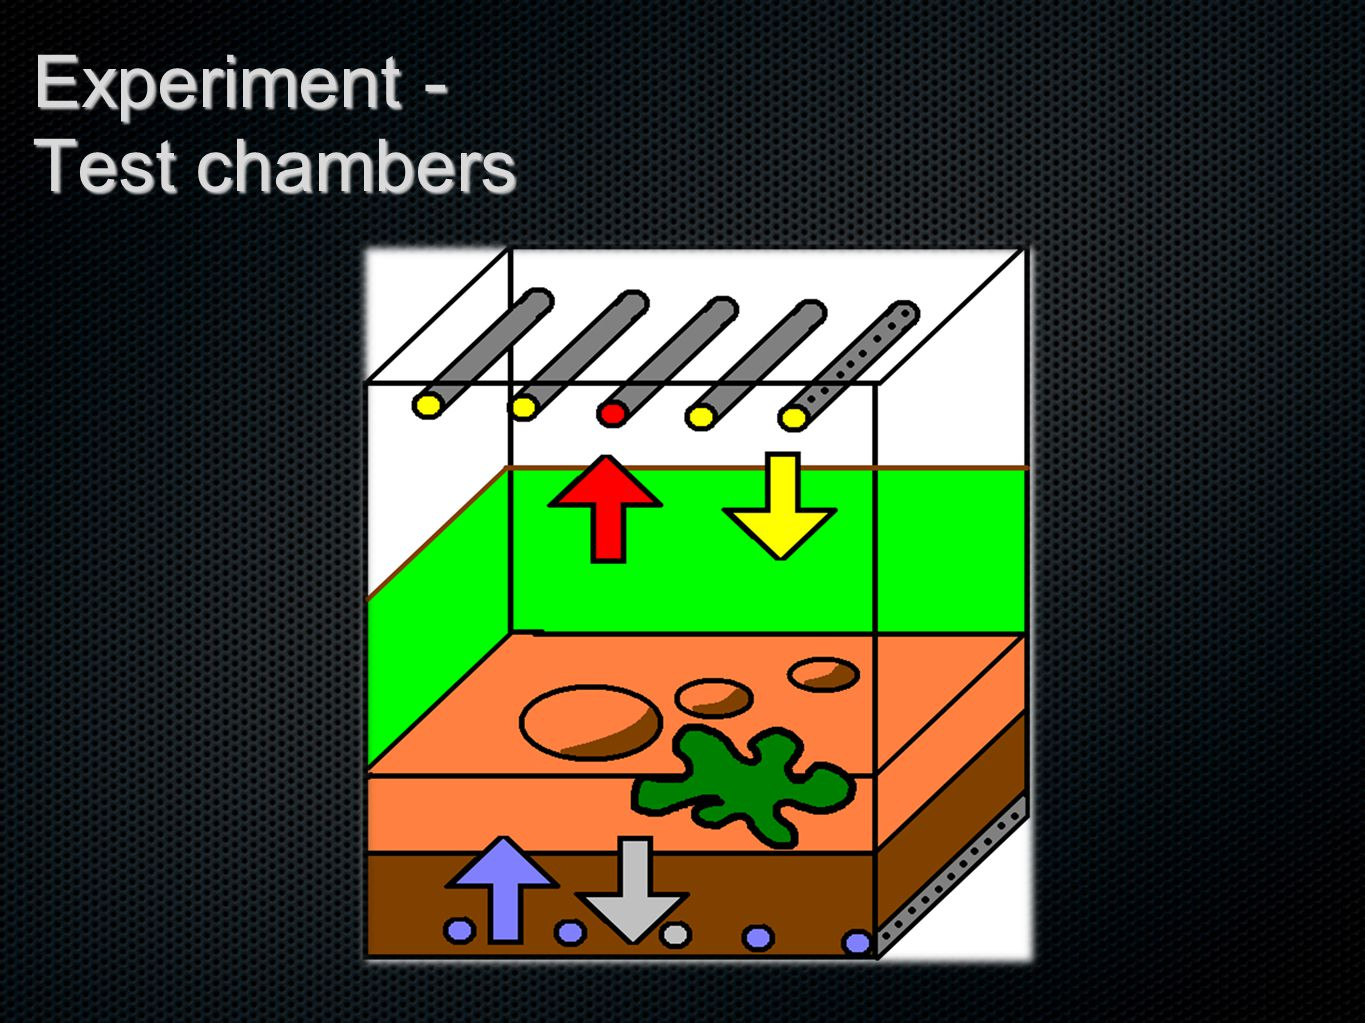 Experiment - Test chambers